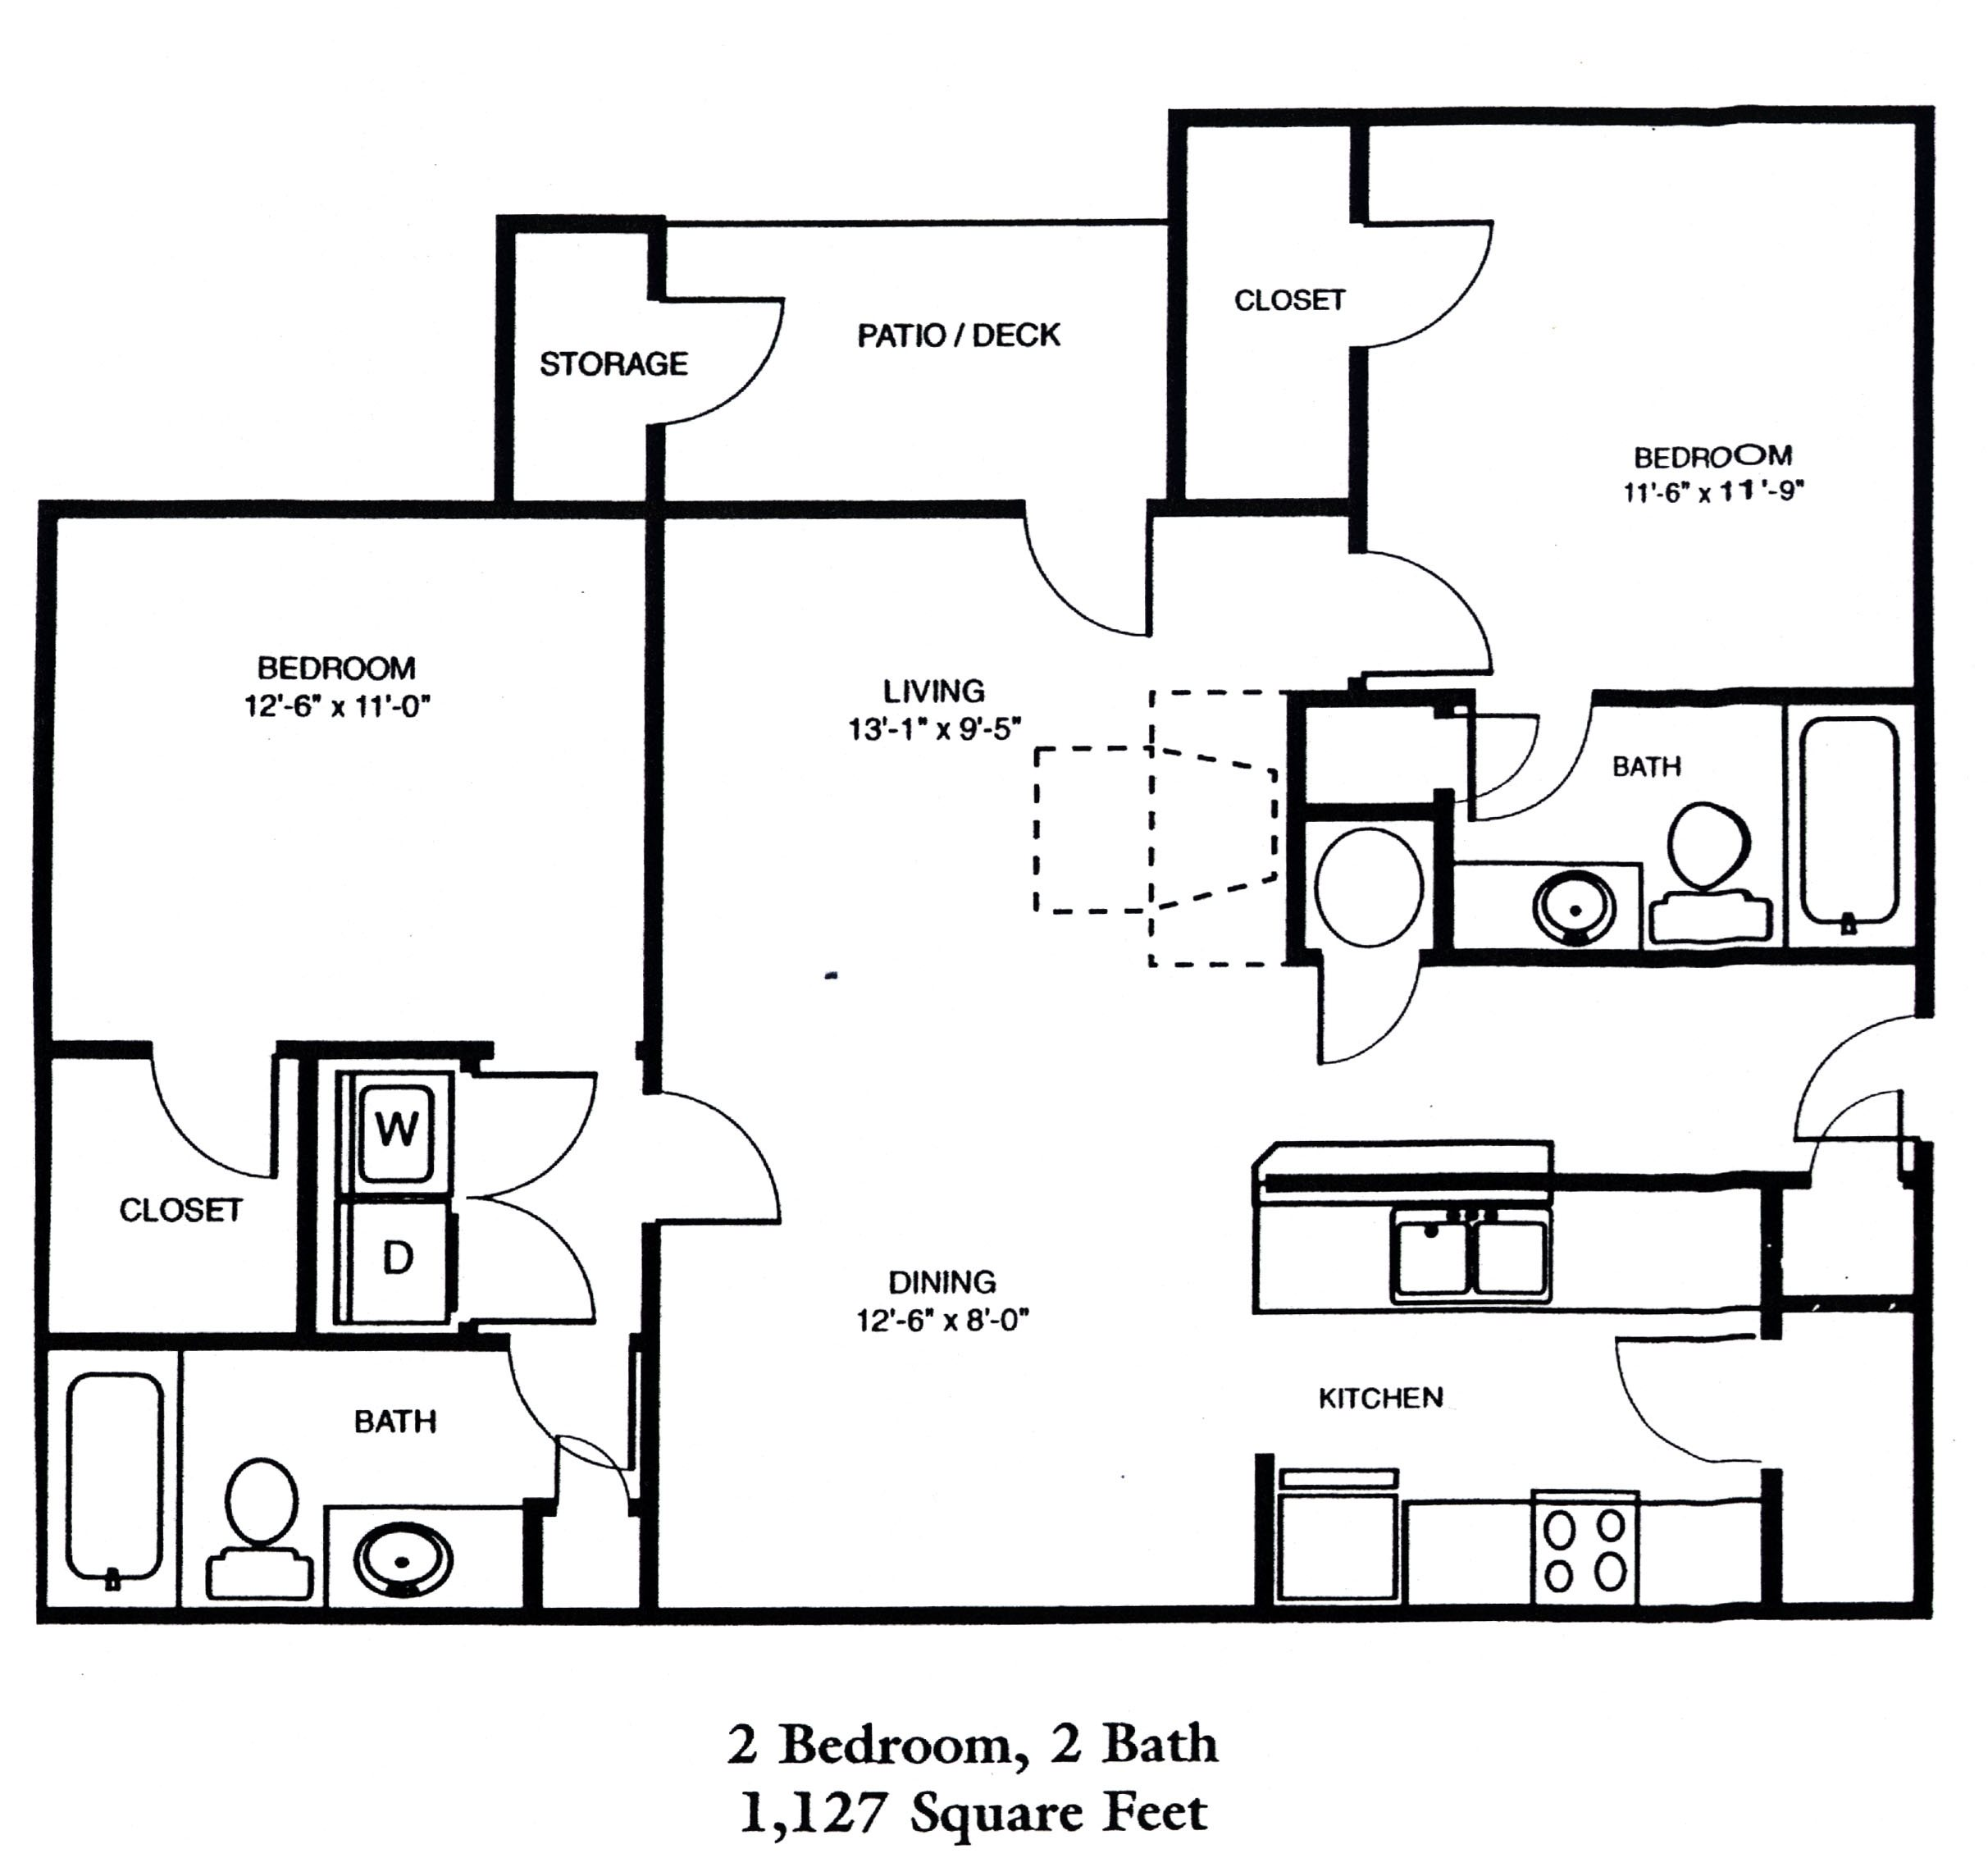 2 Bedroom | 2 Bath Floor Plan 3